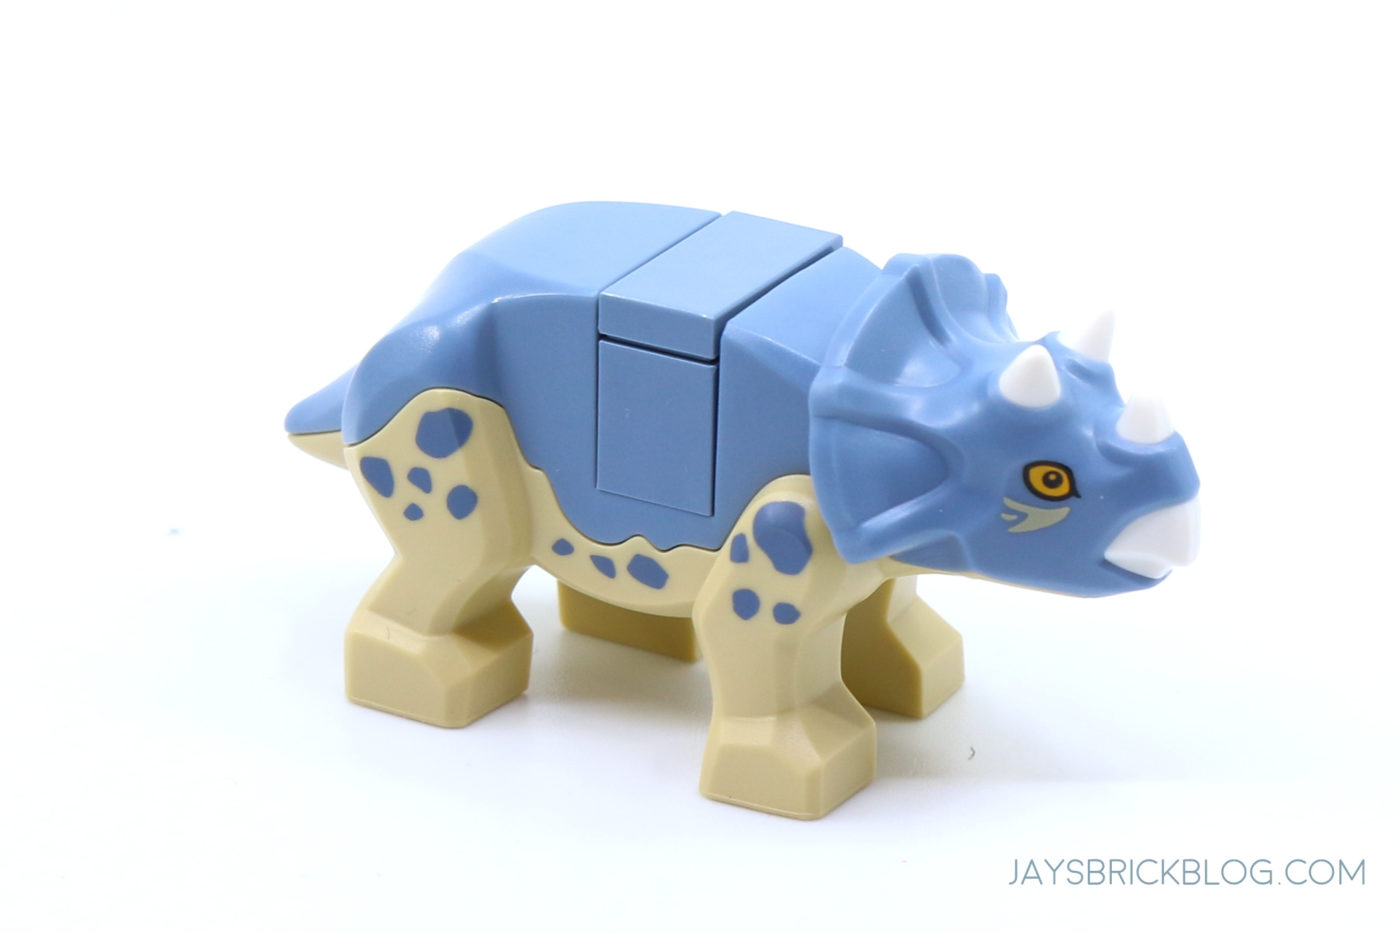 LEGO 76940 T. rex Dinosaur Fossil Exhibition Blue Baby Triceratops